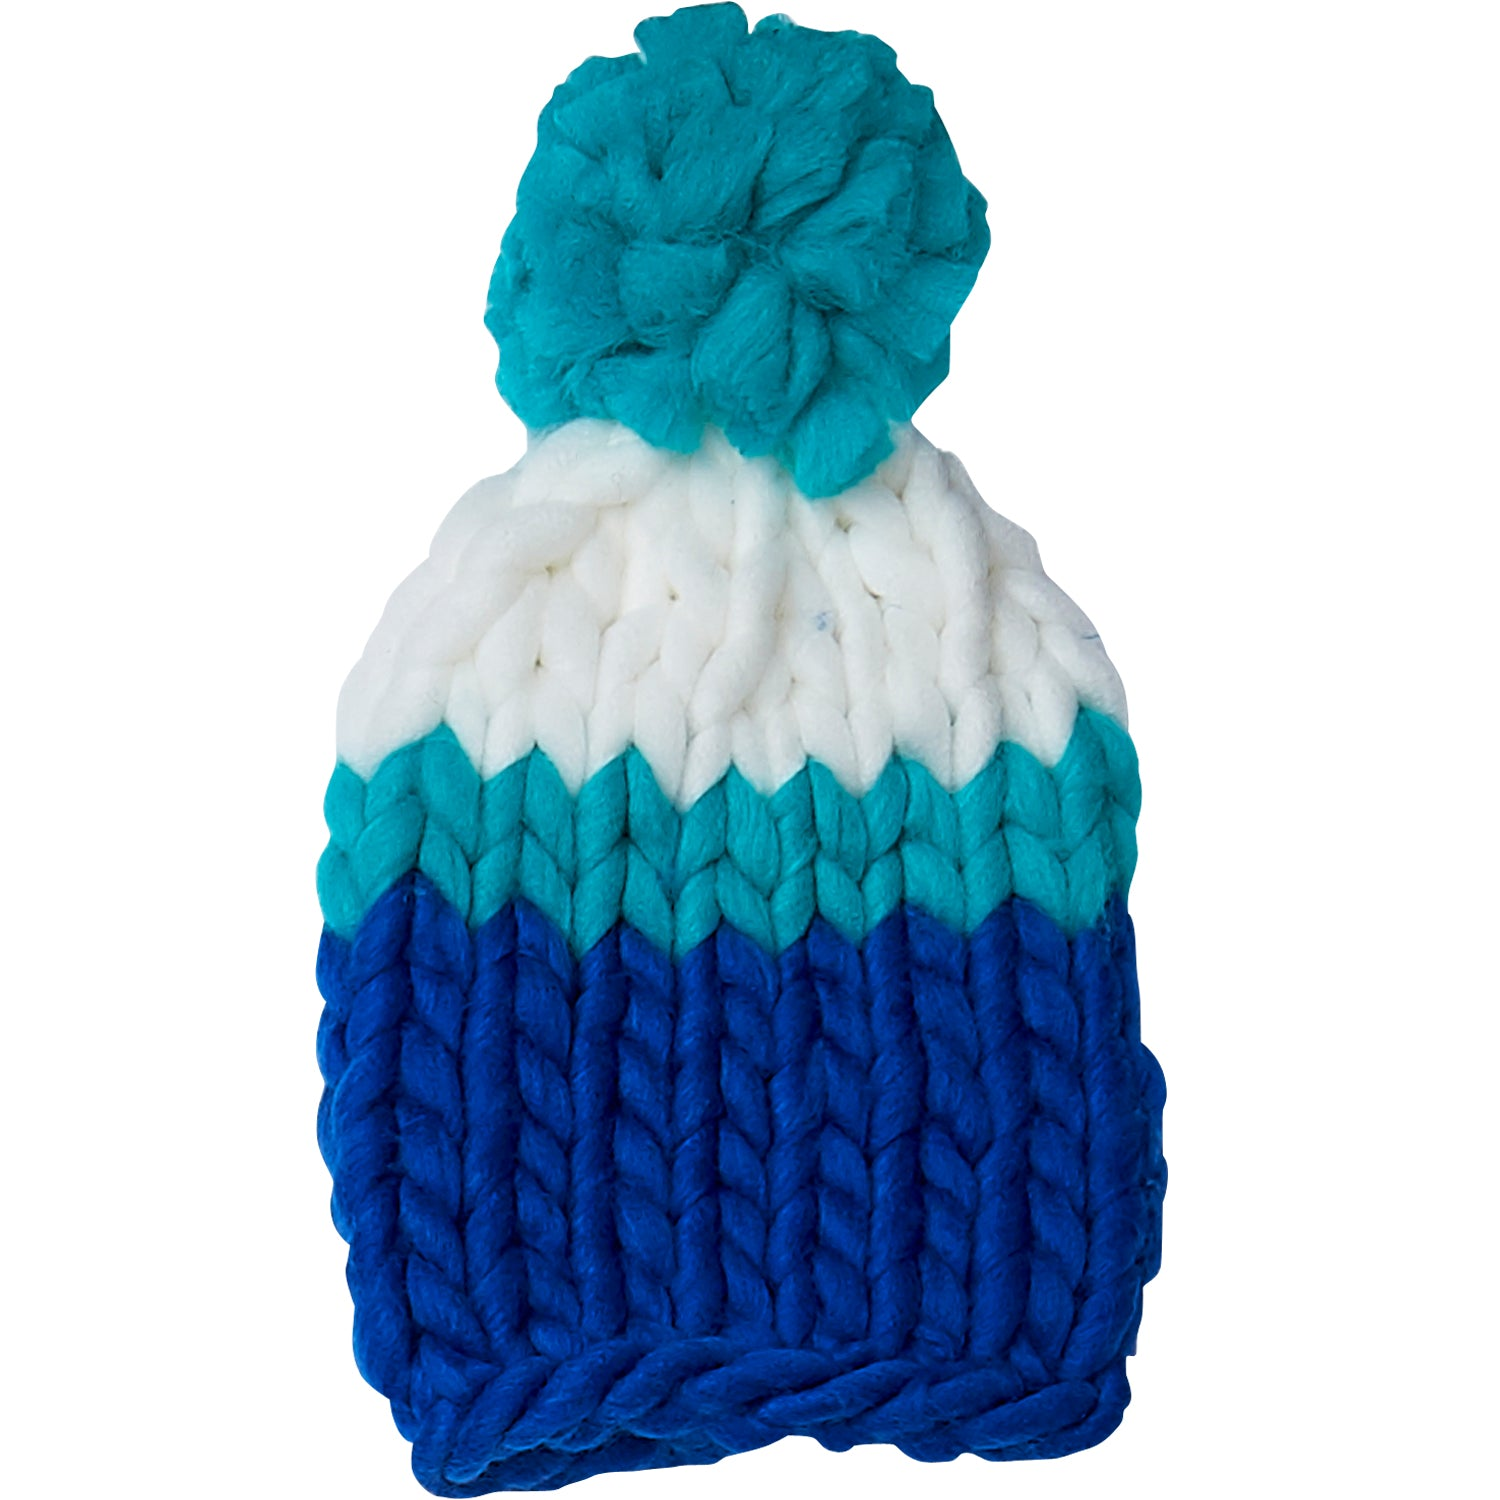 04a53e755f7 Wholesale Boutique Gifts - Navy   Blue Chunky Knit Hat - Tickled Pink